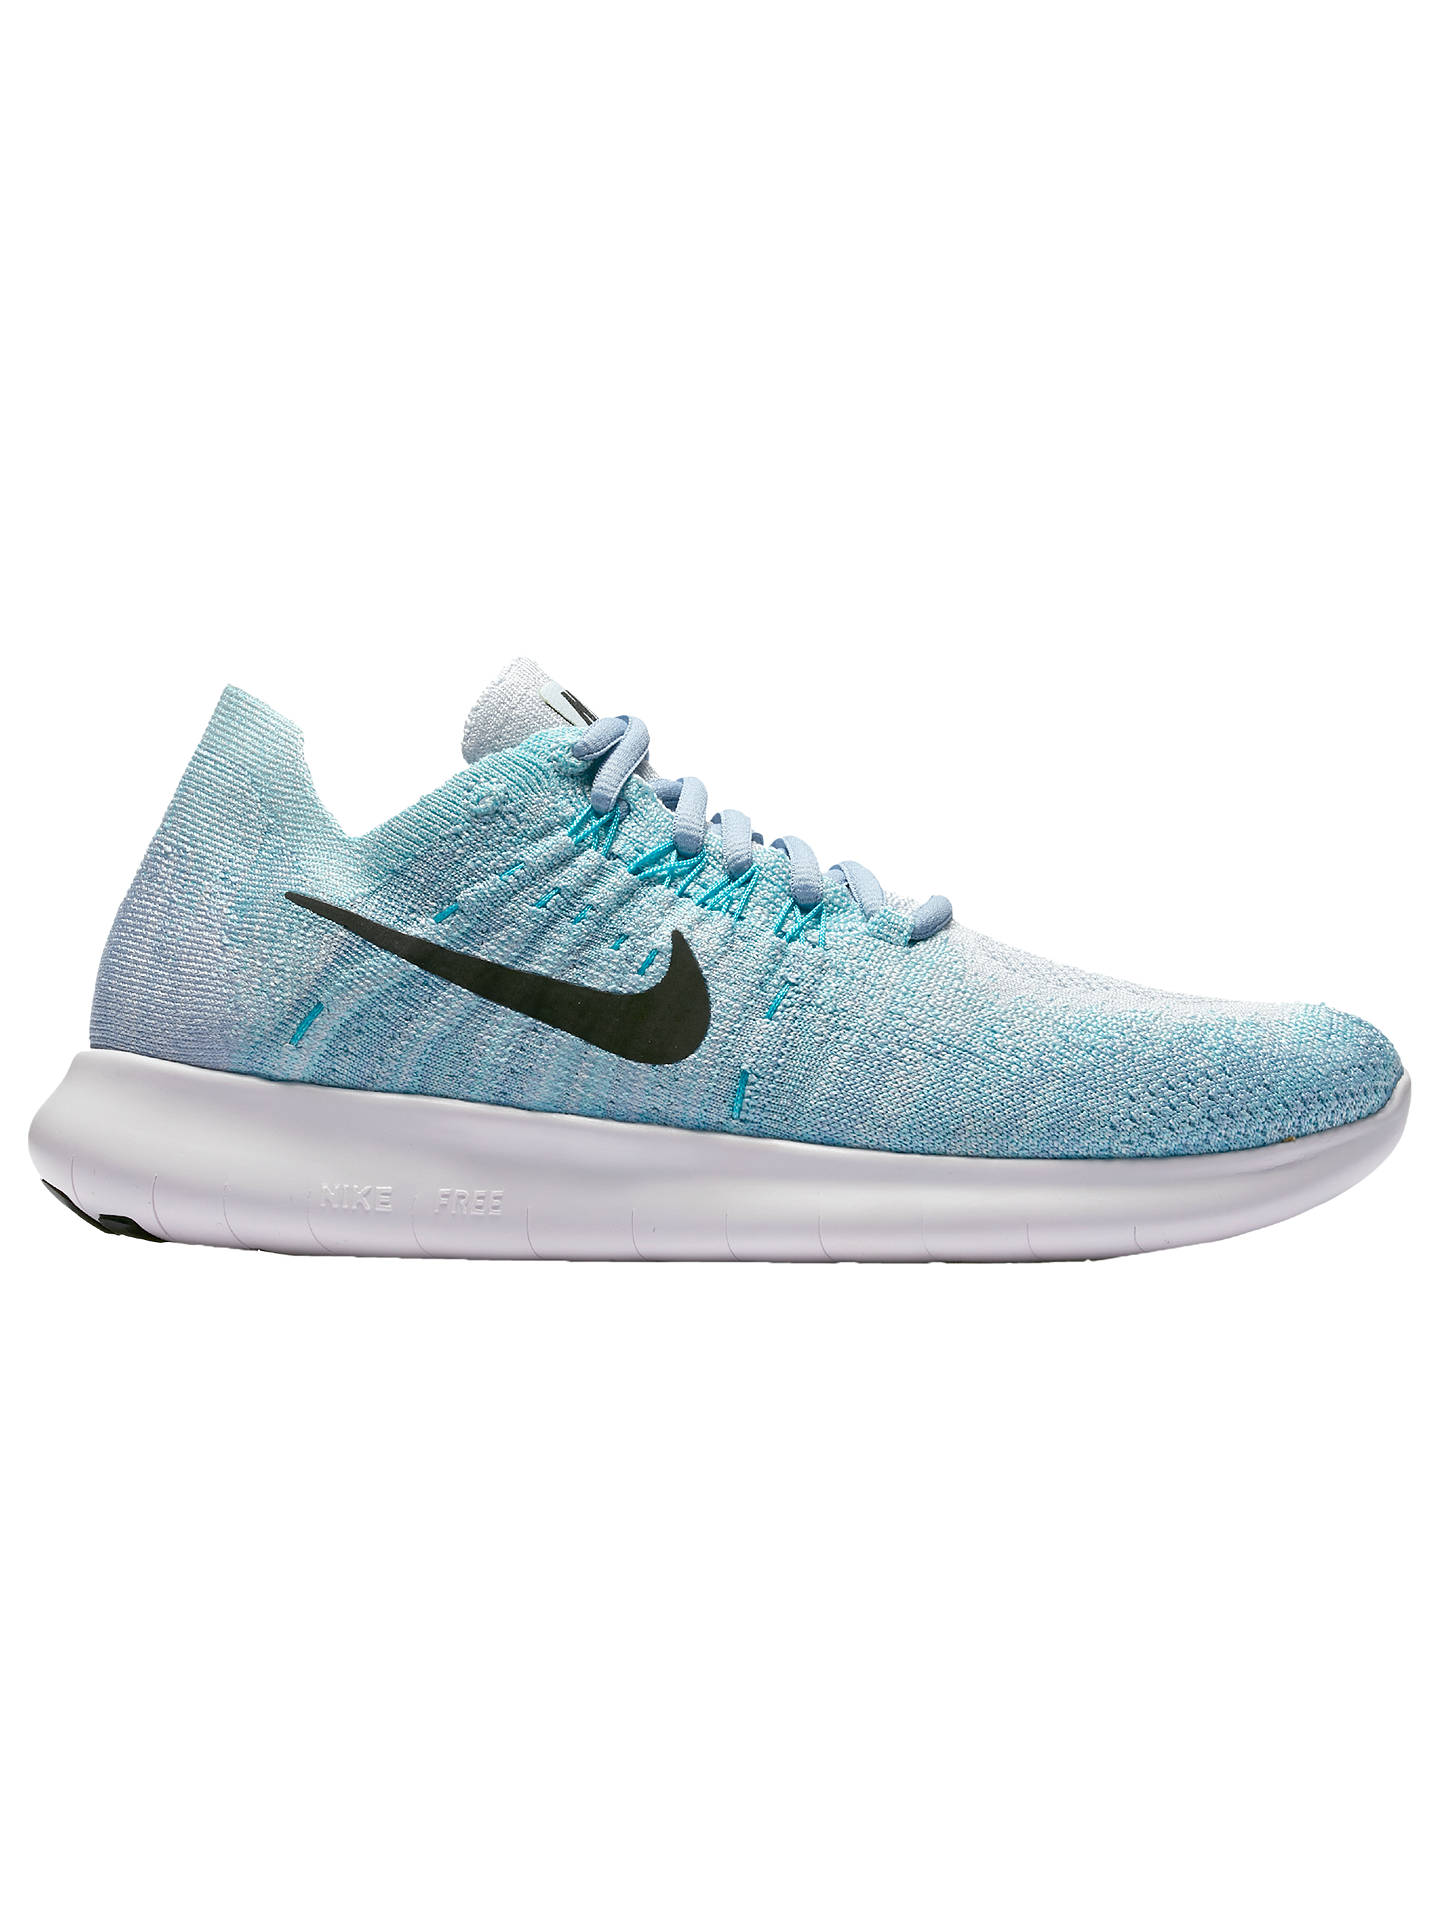 promo code 67b55 2a32f BuyNike Free RN Flyknit 2017 Women s Running Shoes, Blue Tint Aurora Green,  4 ...